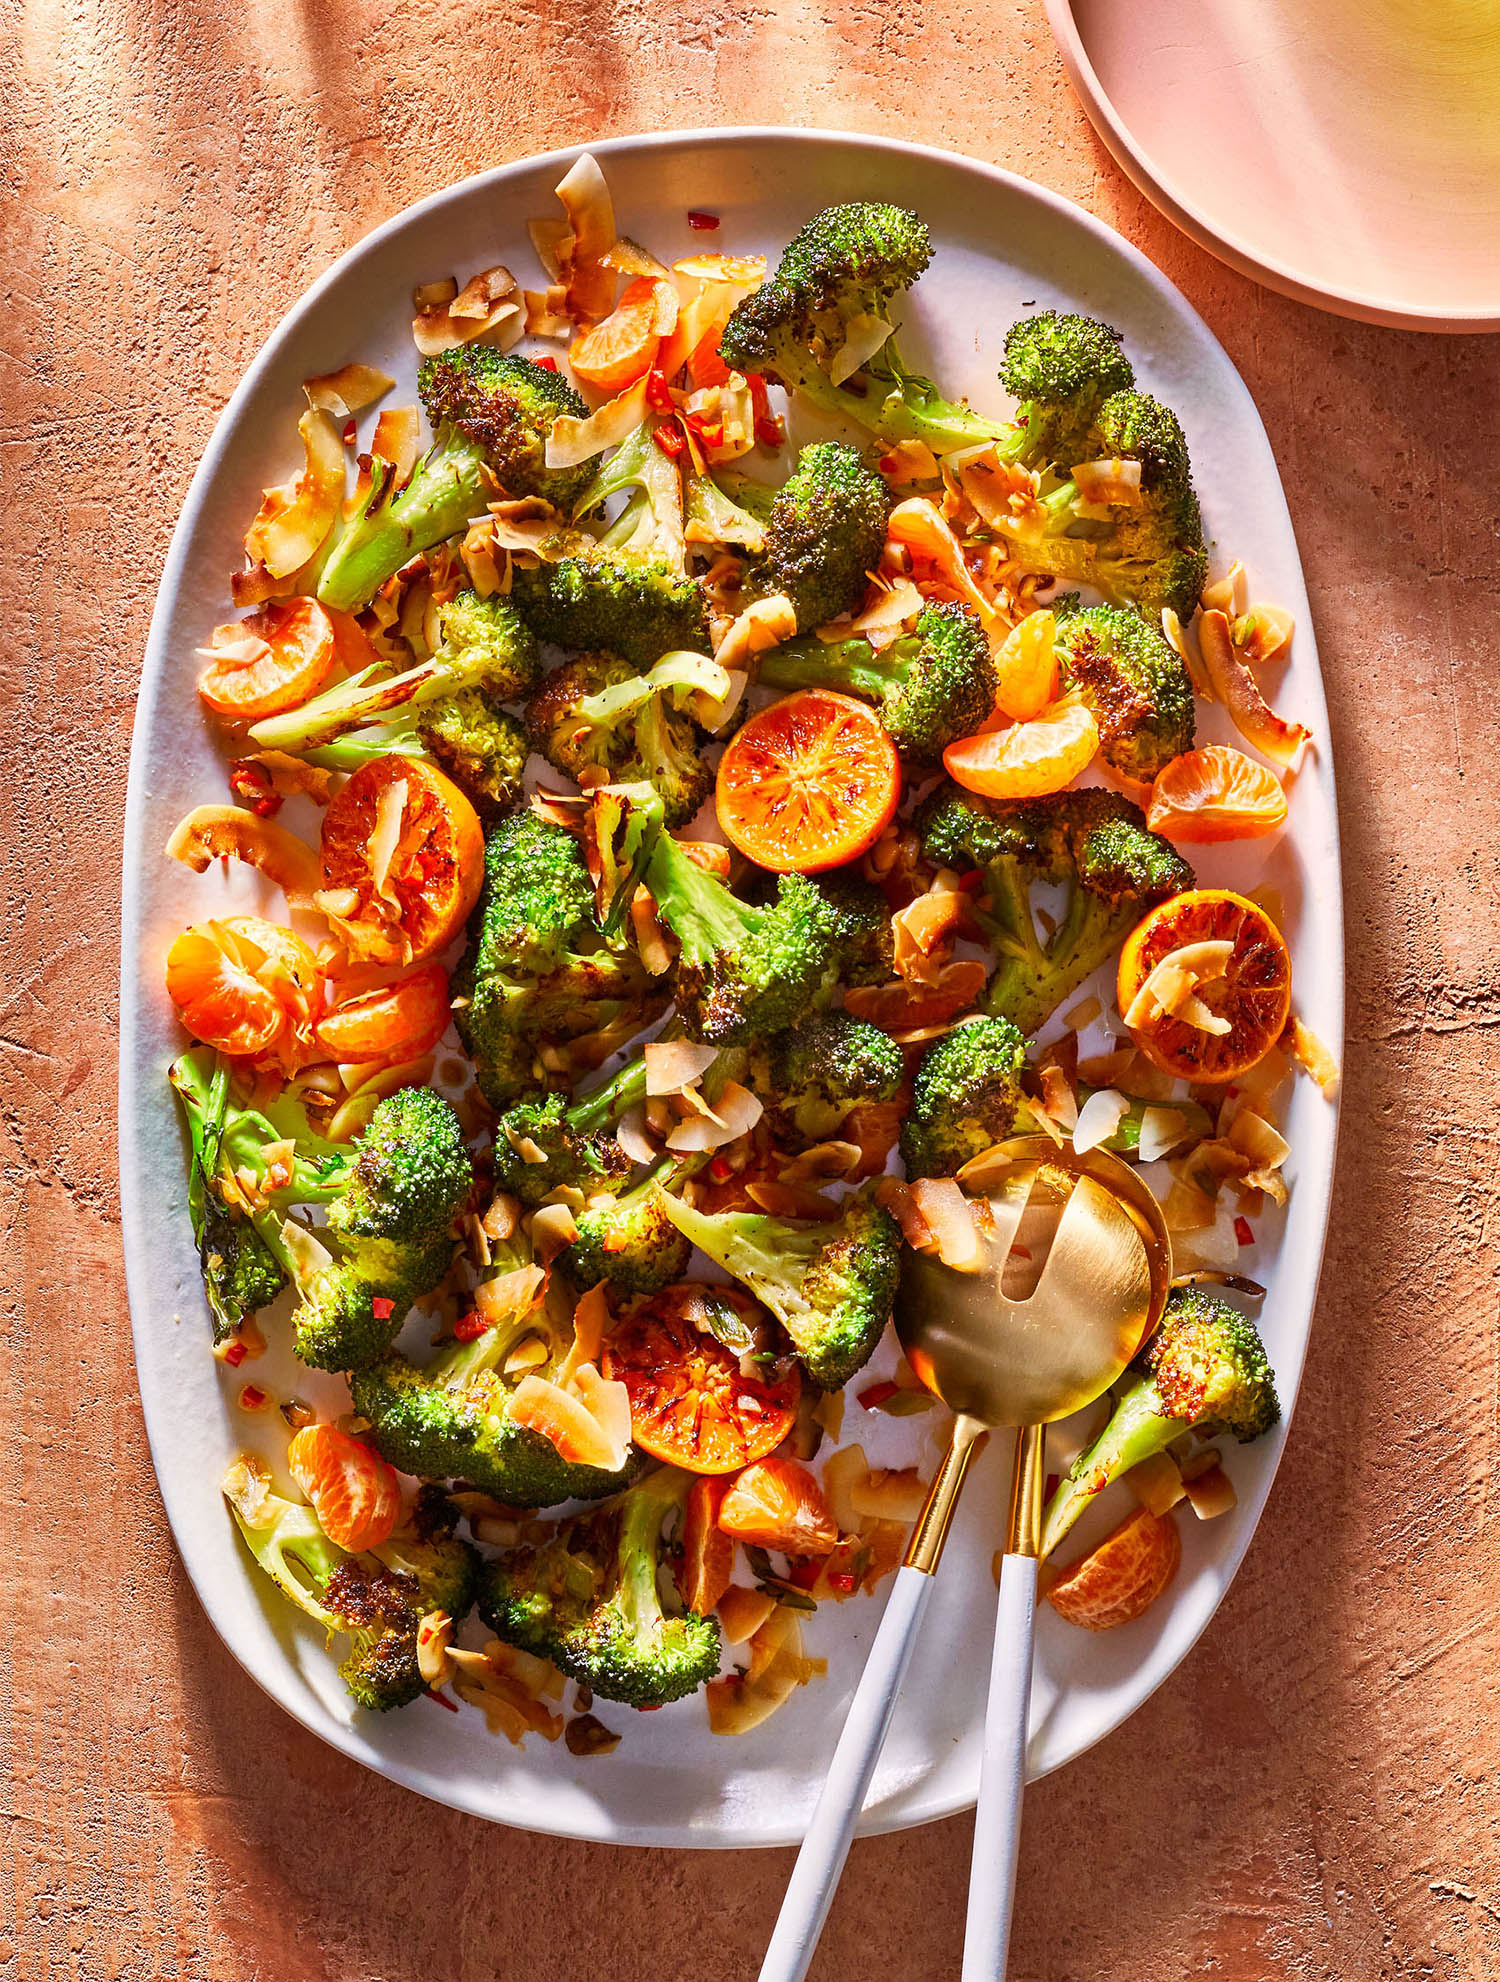 Roasted Broccoli With Clementines and Coconut-Chile Crunch